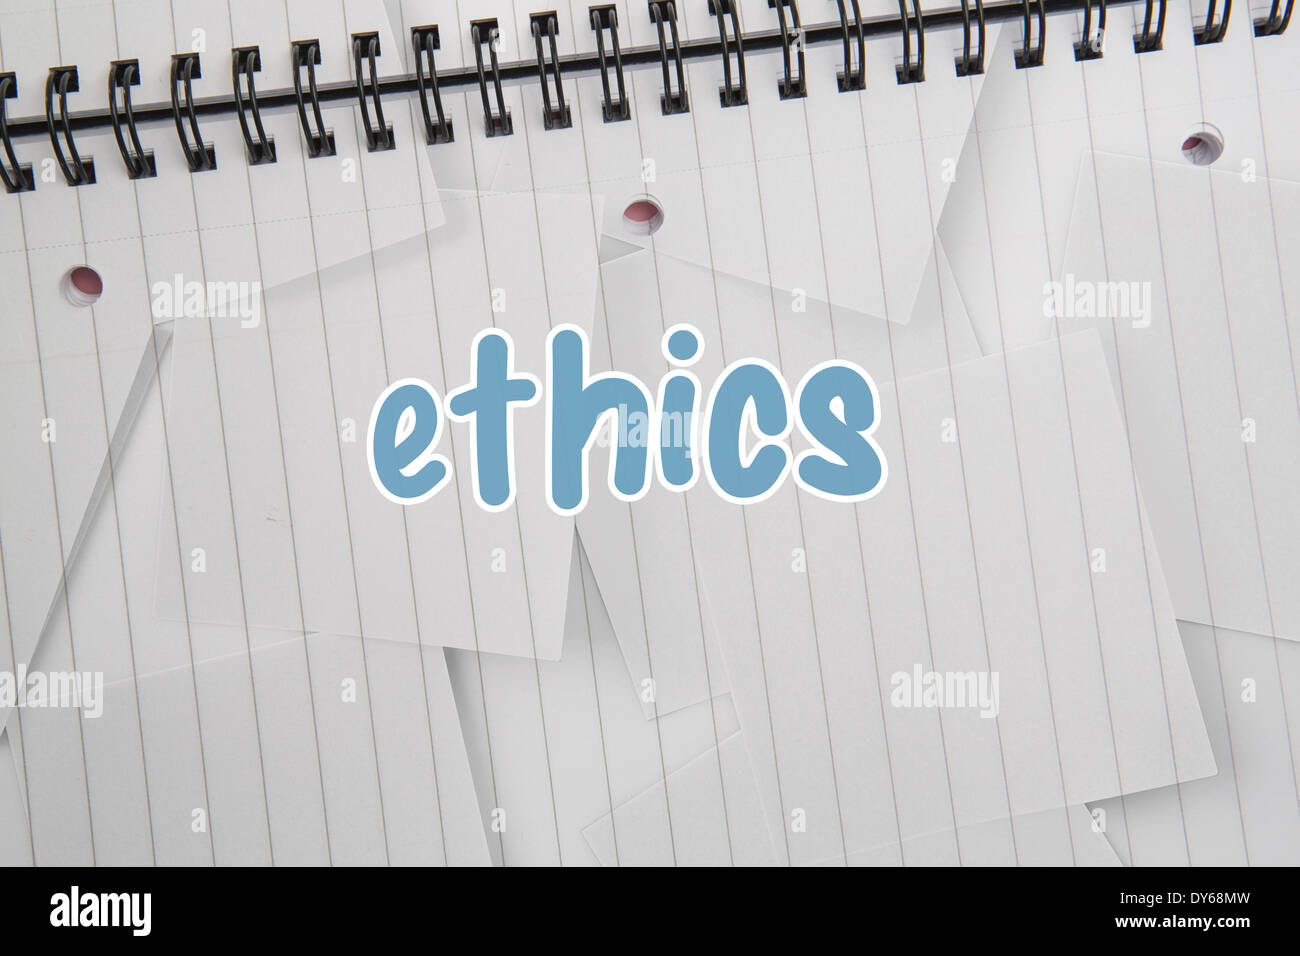 Ethics against digitally generated notepad with lined paper - Stock Image